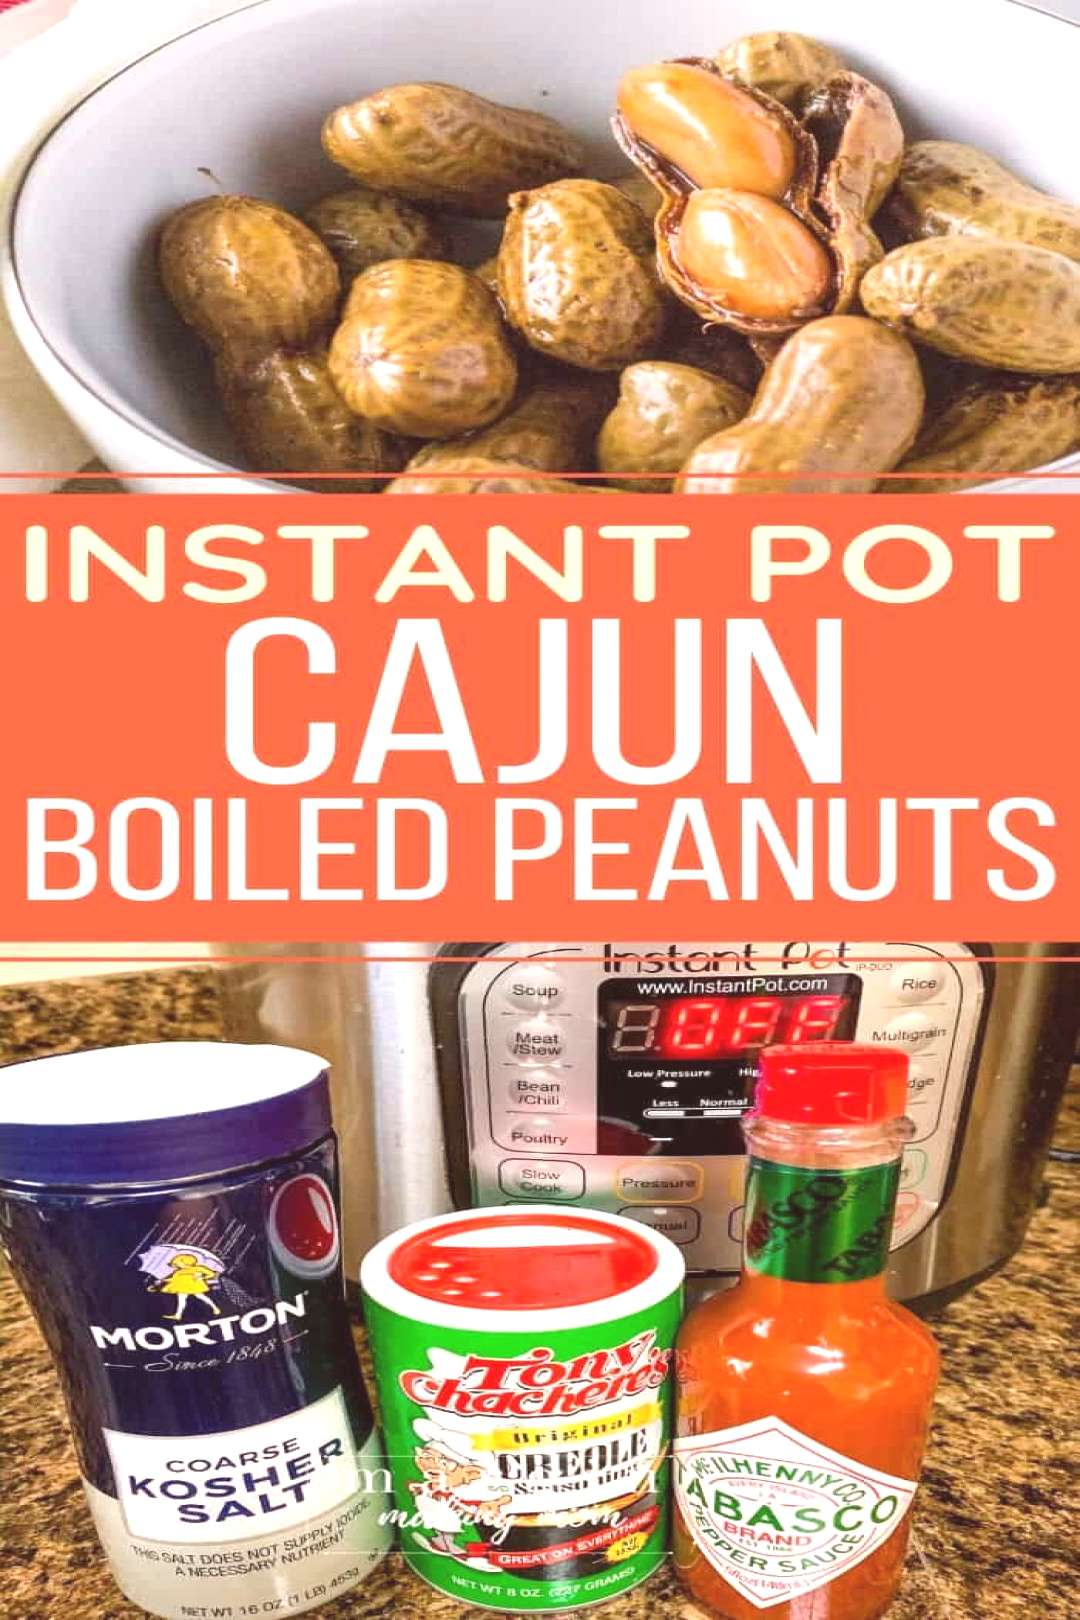 These Instant Pot Cajun boiled peanuts are perfect for those who like to take a walk on the spicy s